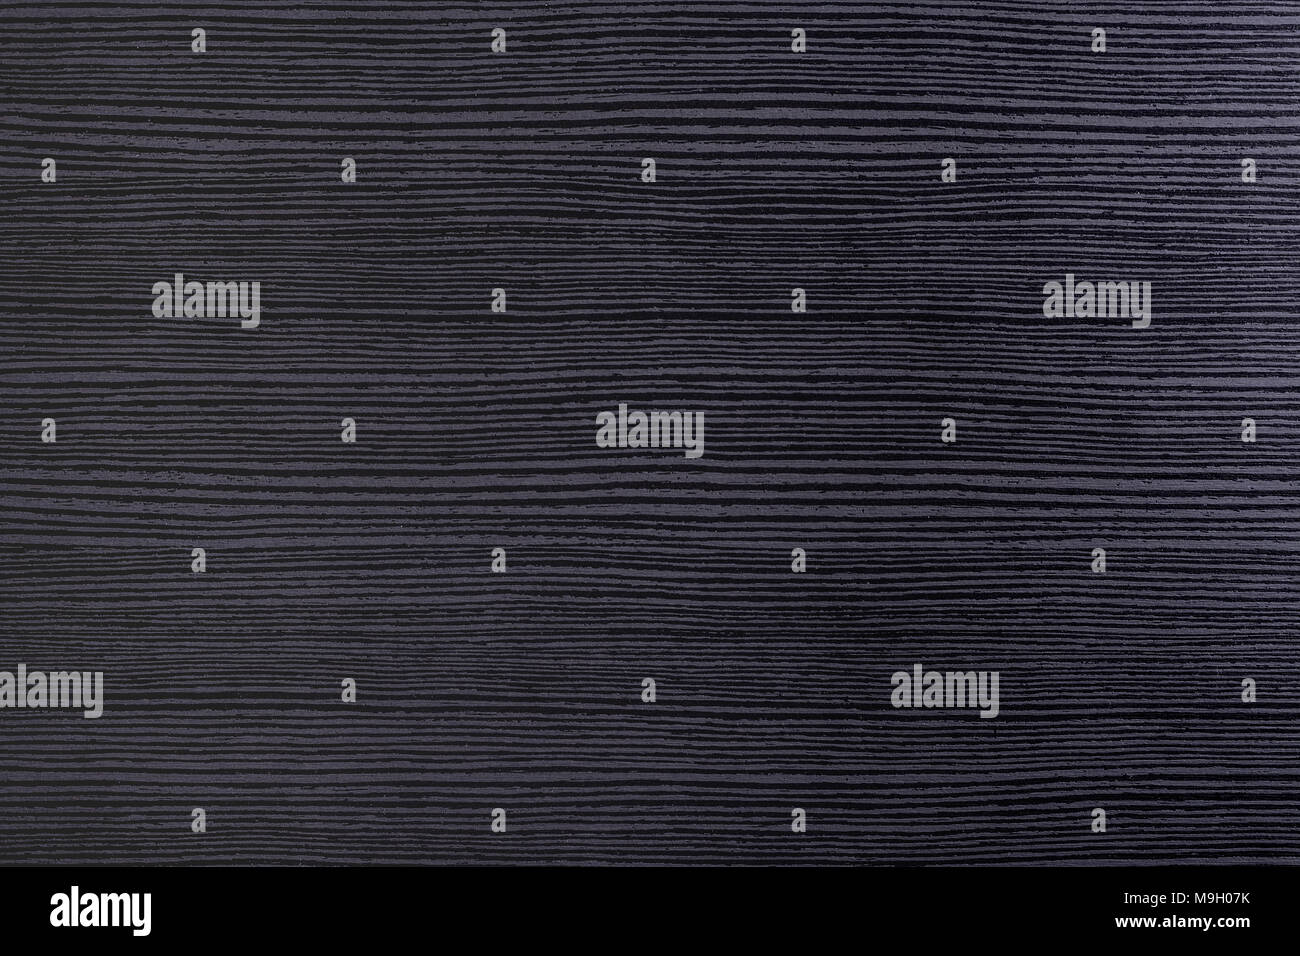 black table top texture. Black Modern Wood Board Texture Background,Table Top View. - Stock Image Table